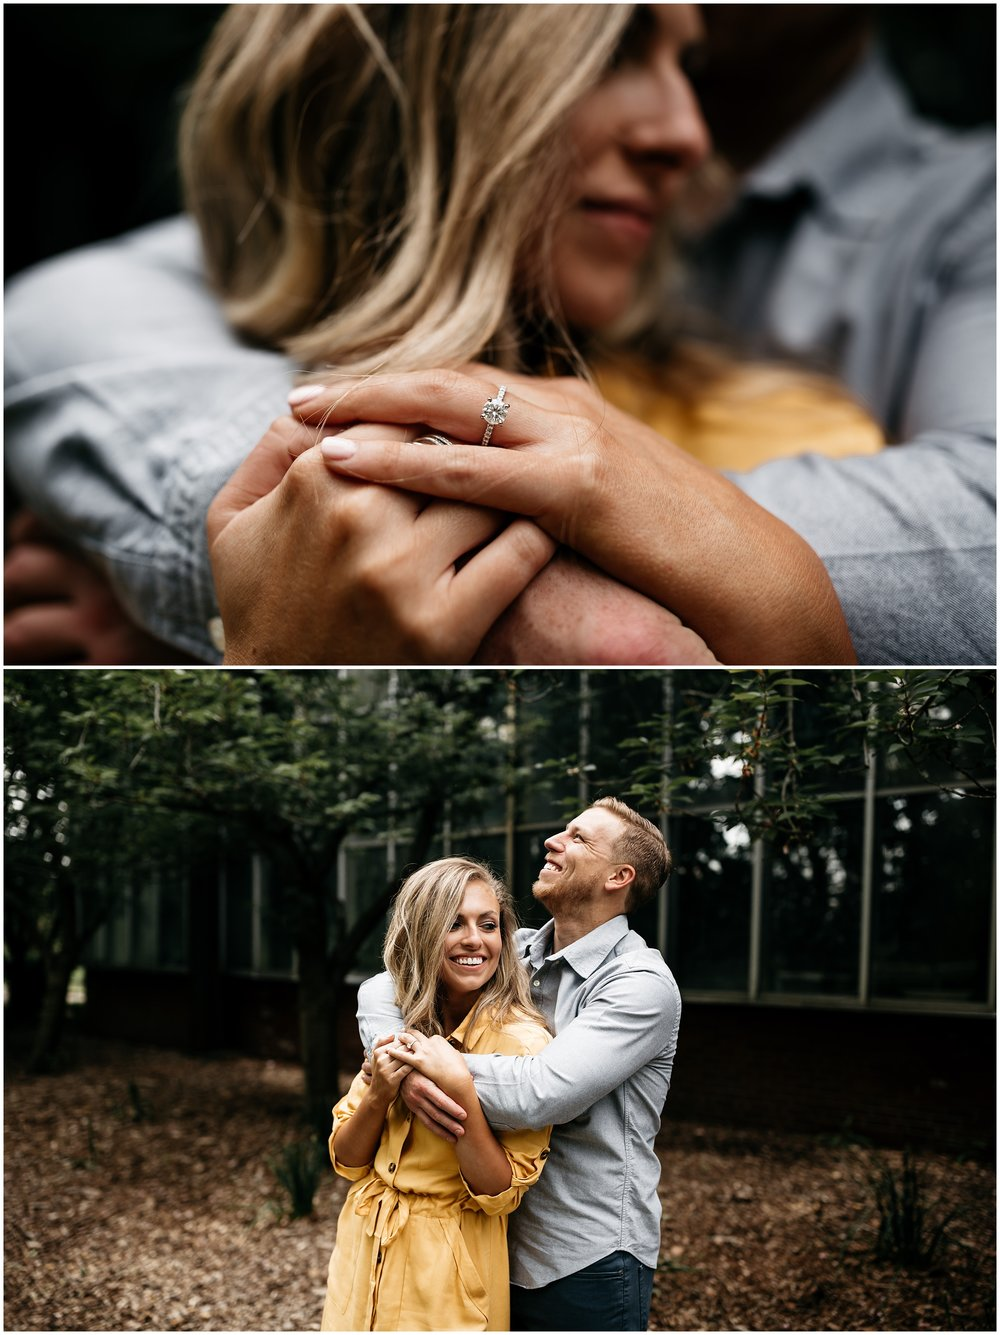 pittsburghengagementphotos_0010.jpg